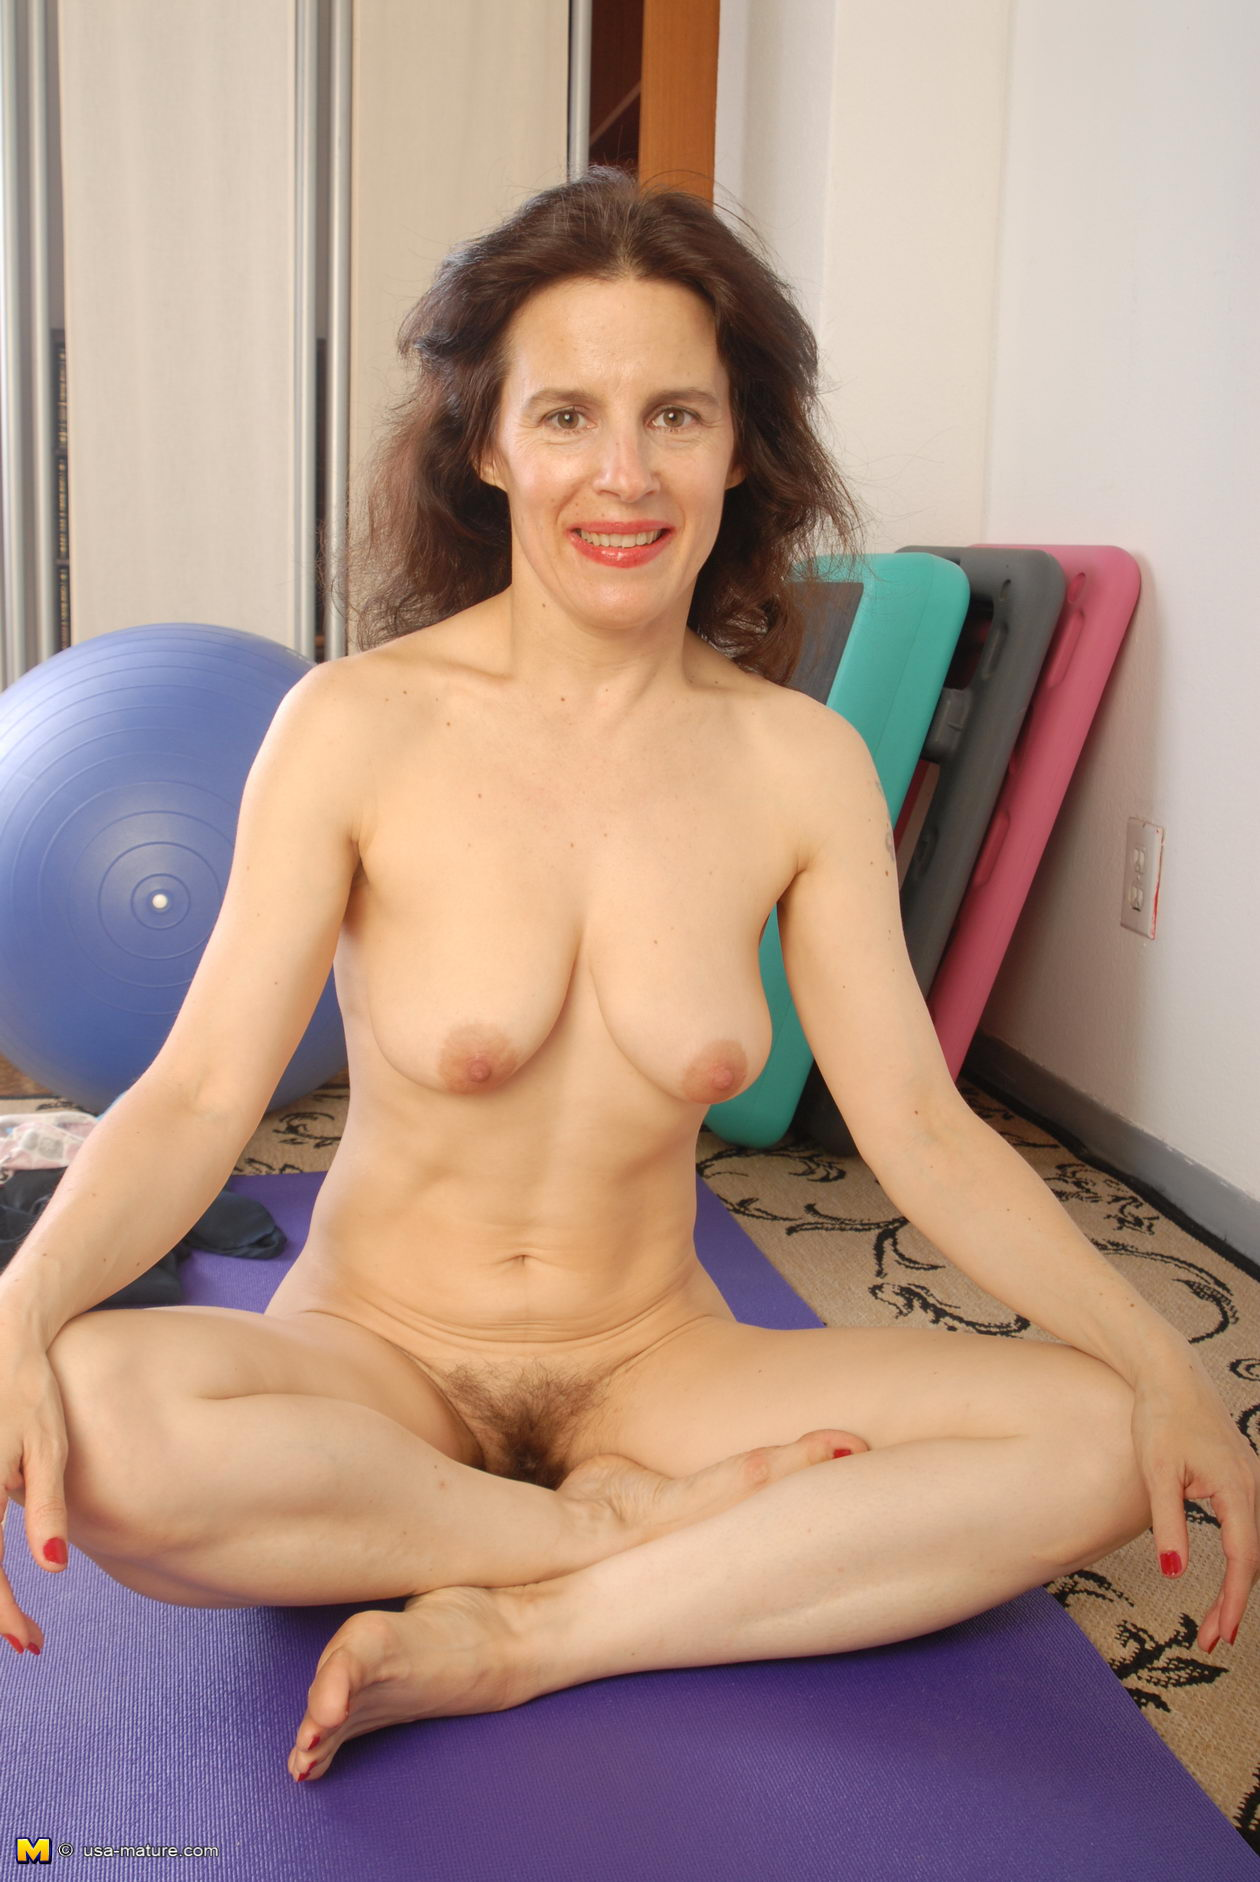 Granny milf free video